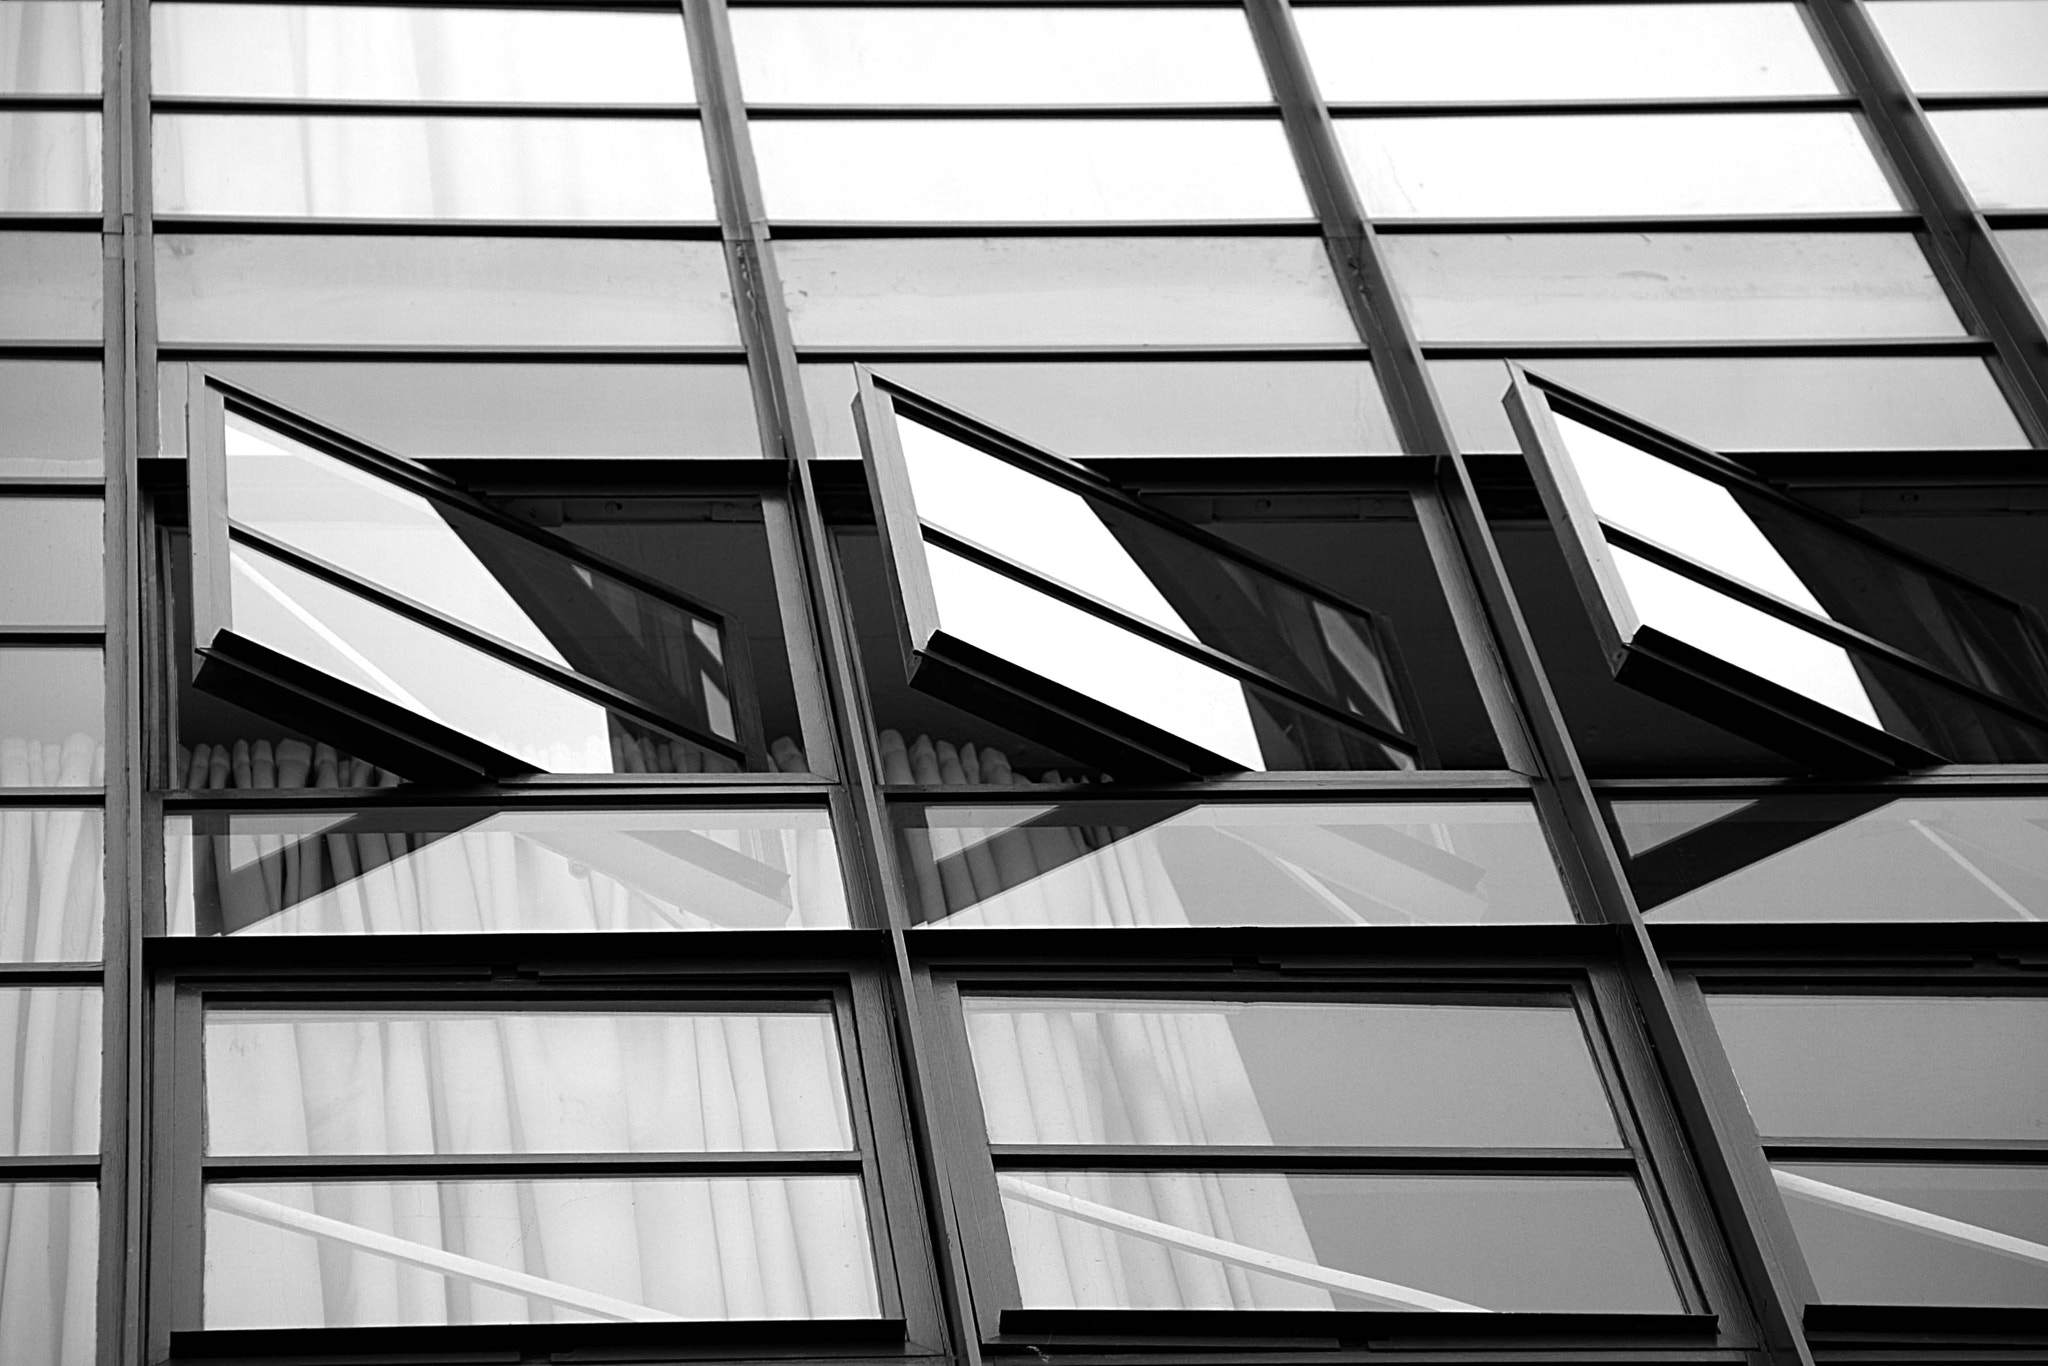 Photograph Bauhaus - Dessau by Christian Morgenstern on 500px